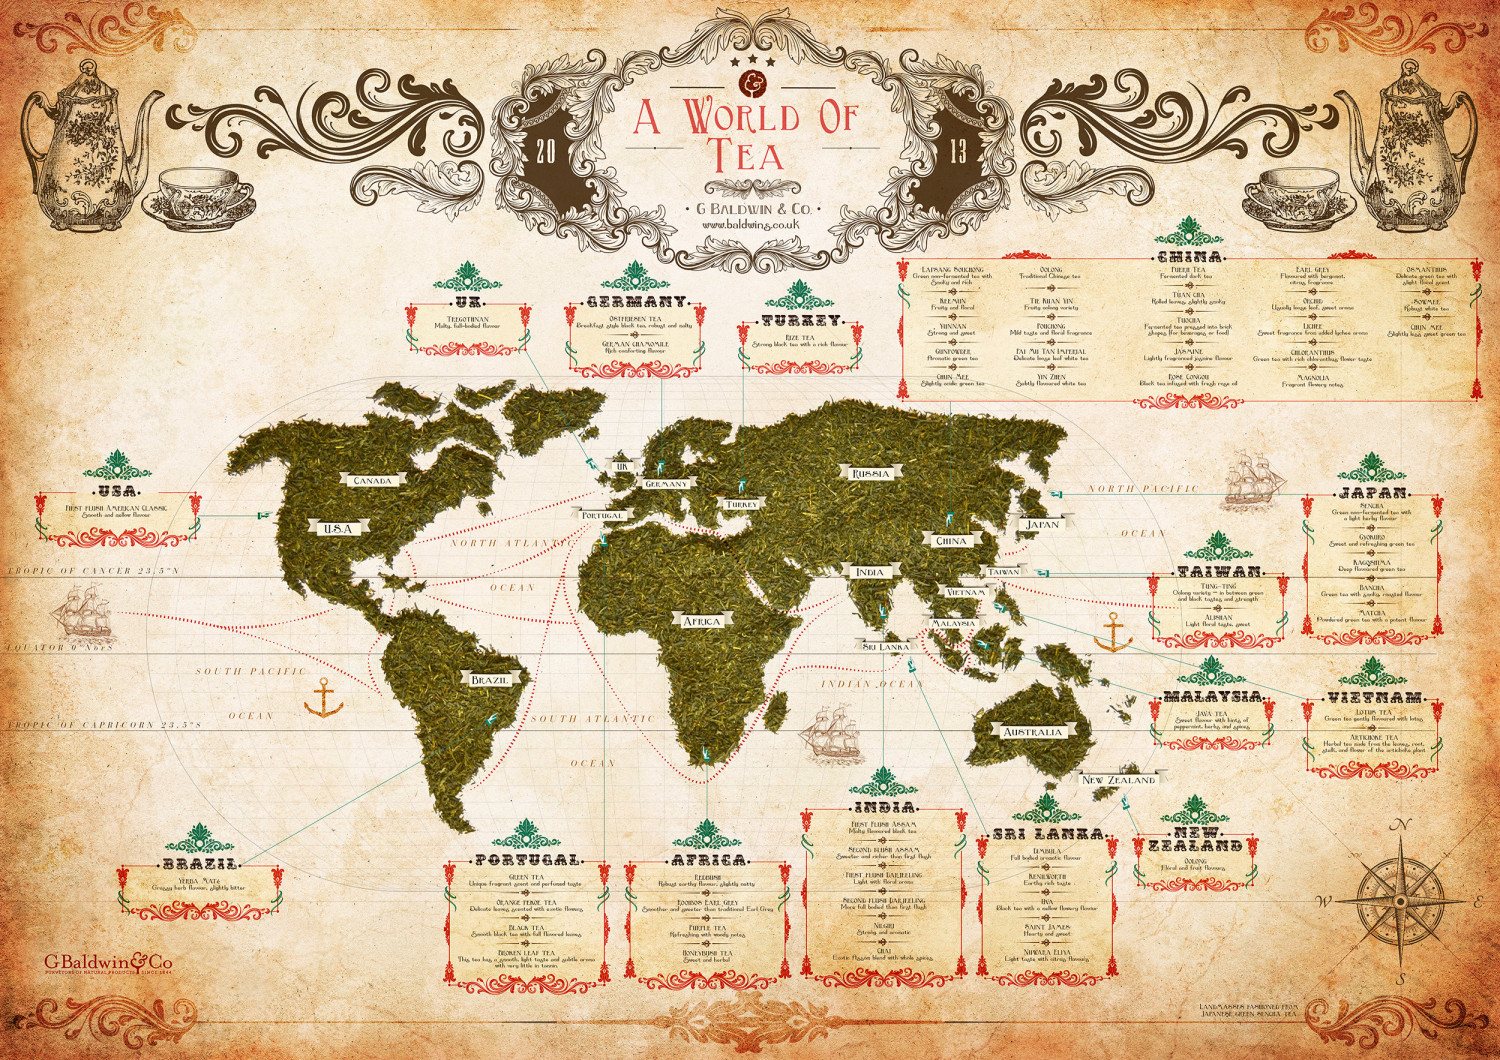 A World of Tea Infographic